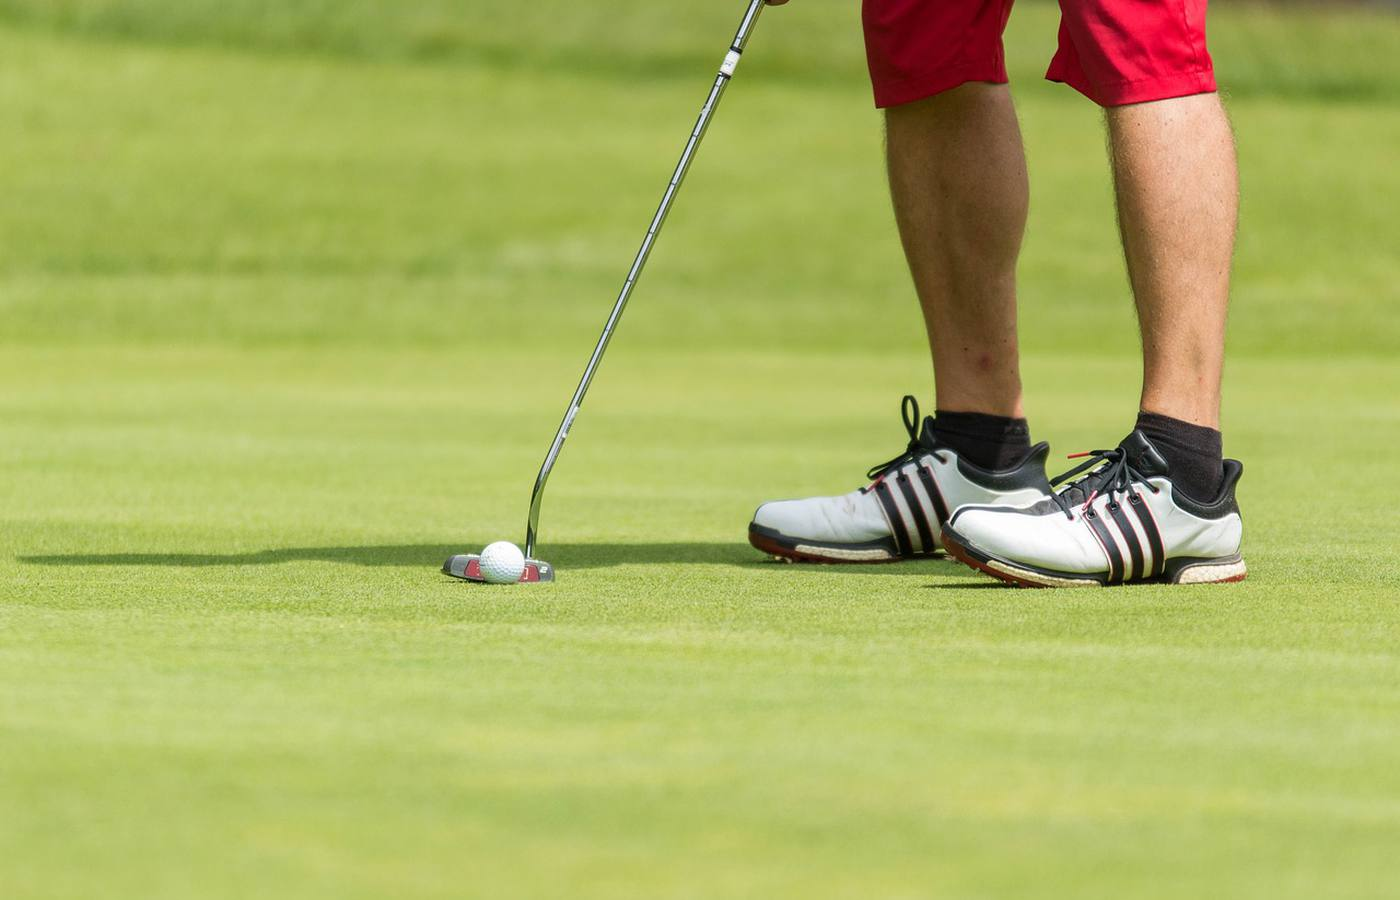 The Most Expensive Golf Shoes You Can Buy: Are they worth it?